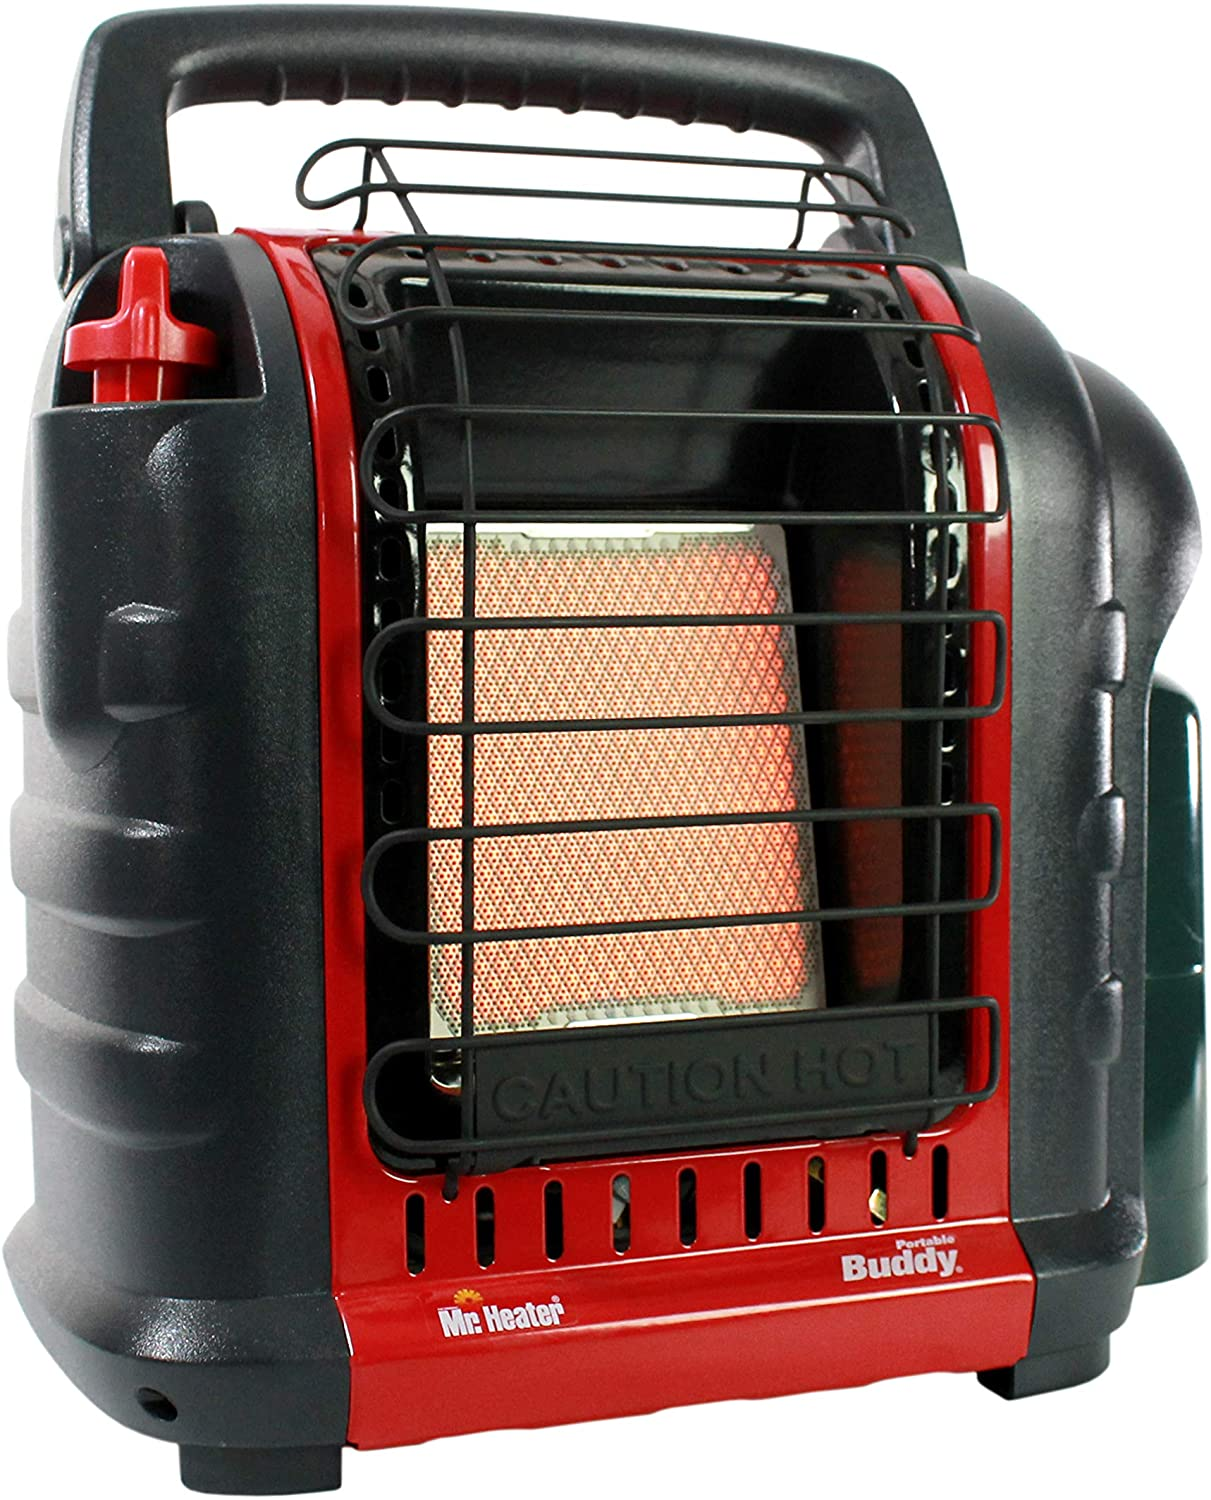 Top 6 Best Garage Heaters Reviews in 2020 & Buying Guide 1